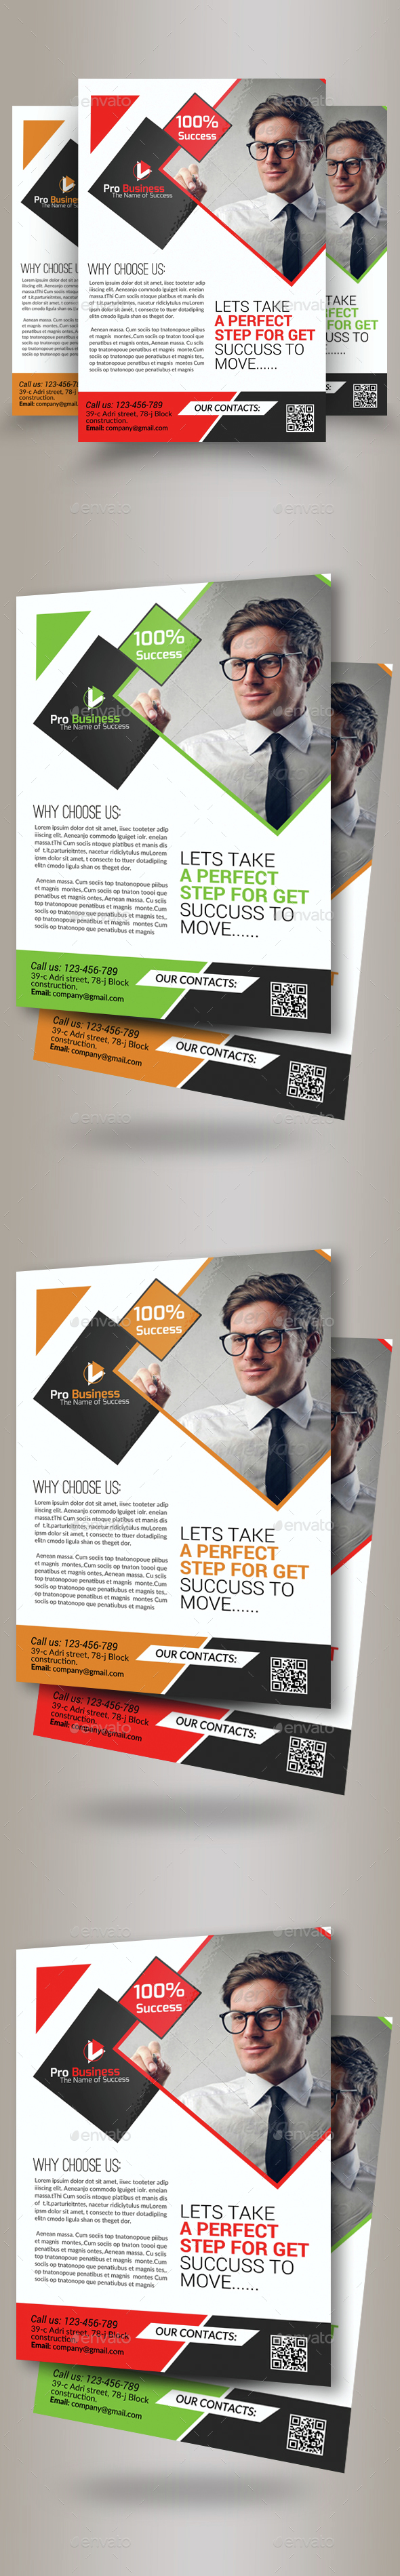 Marketing Consulting Business Flyer Template - Corporate Flyers